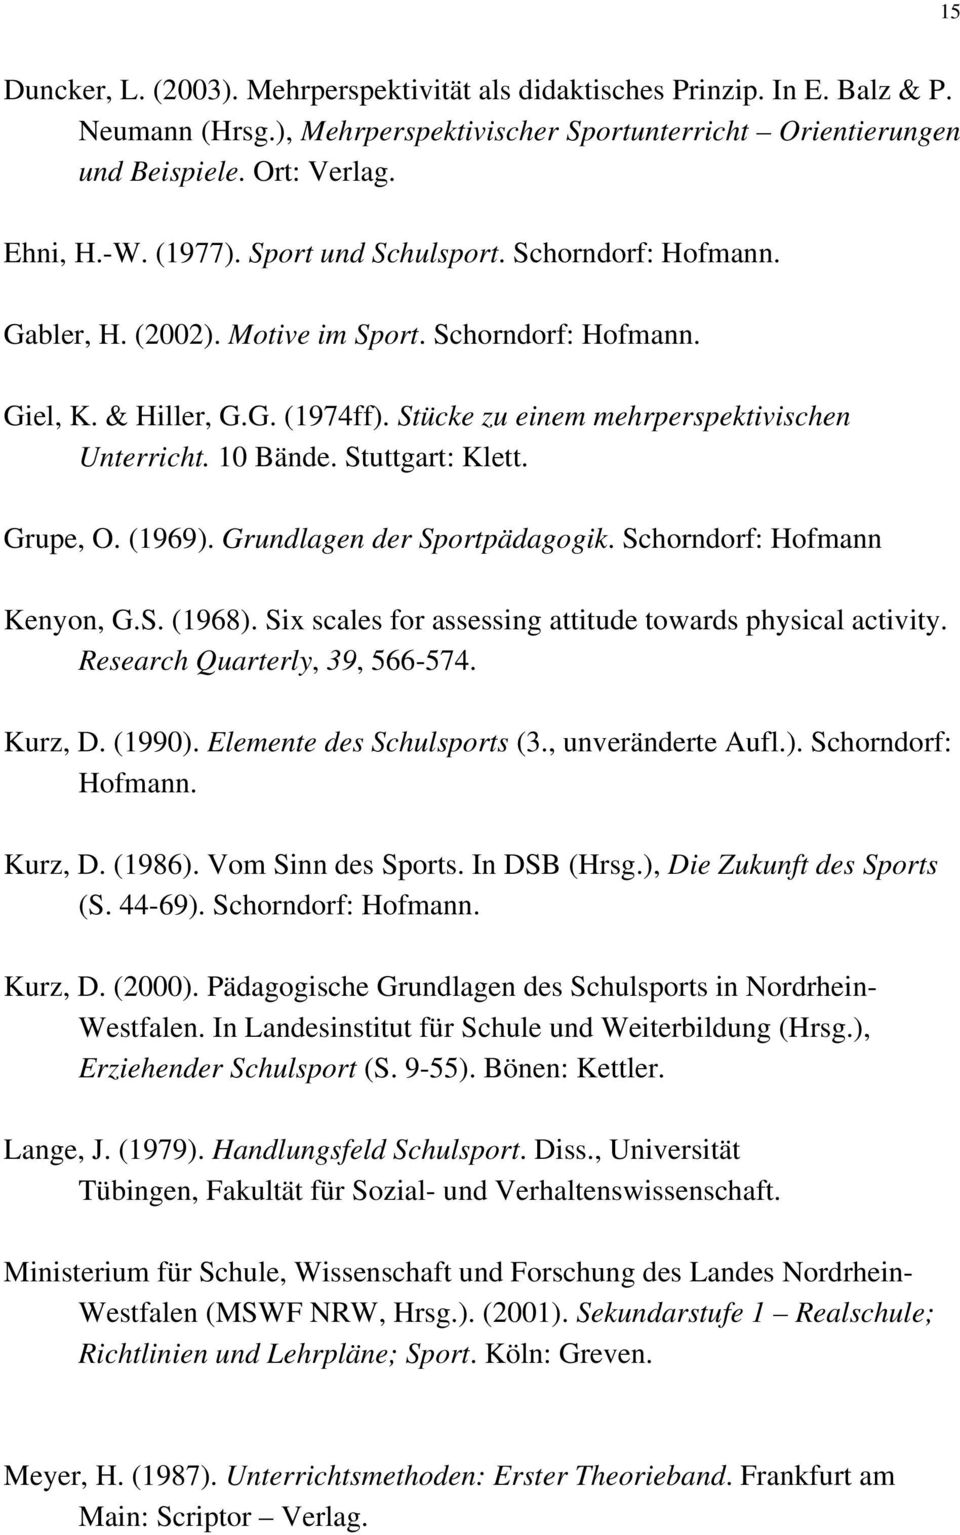 Stuttgart: Klett. Grupe, O. (1969). Grundlagen der Sportpädagogik. Schorndorf: Hofmann Kenyon, G.S. (1968). Six scales for assessing attitude towards physical activity.